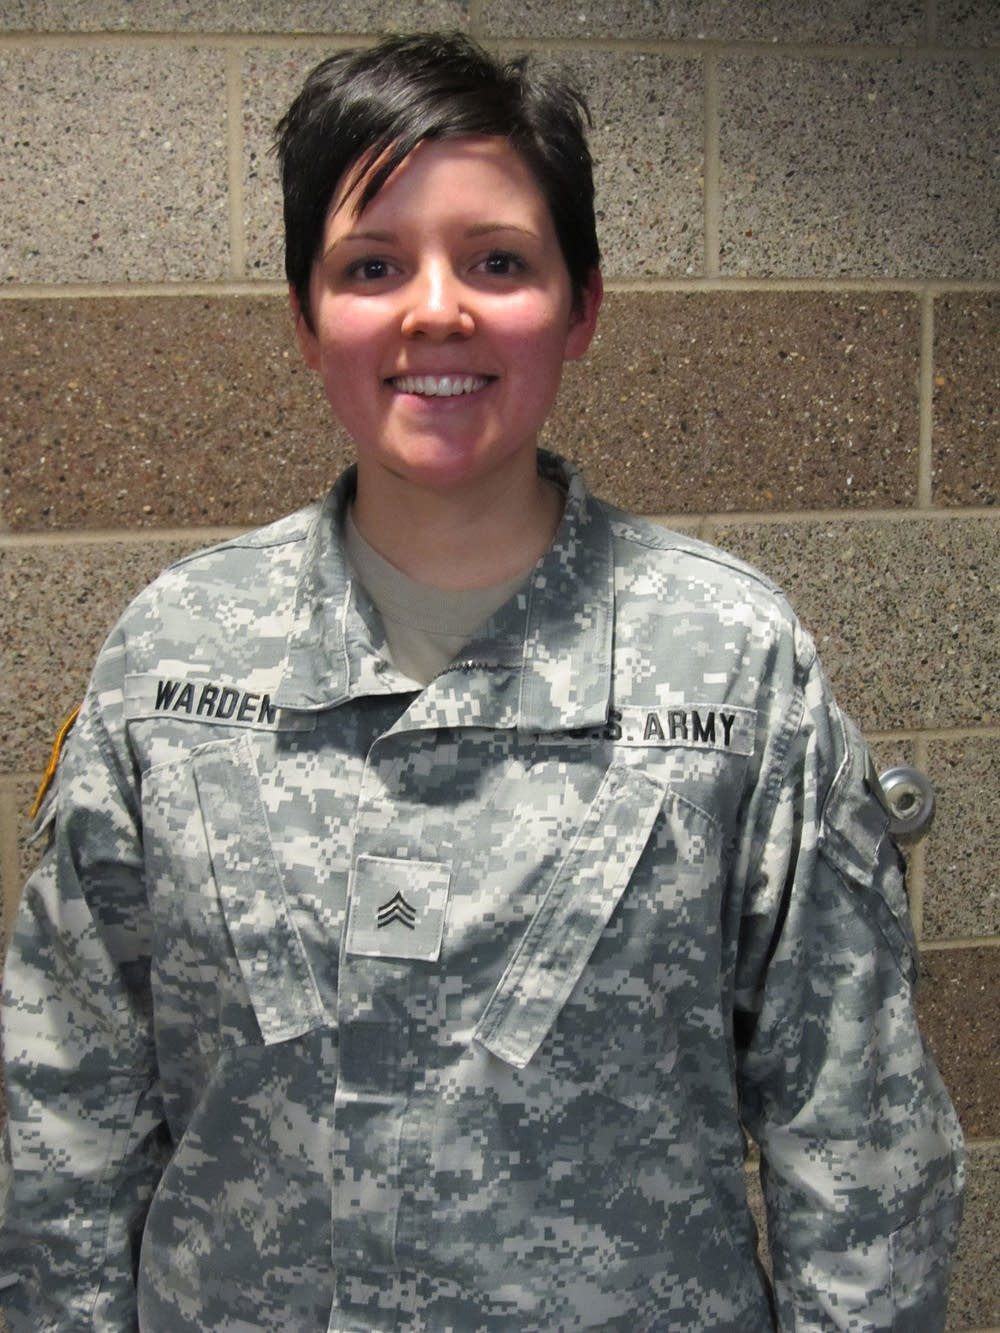 Army national guard women